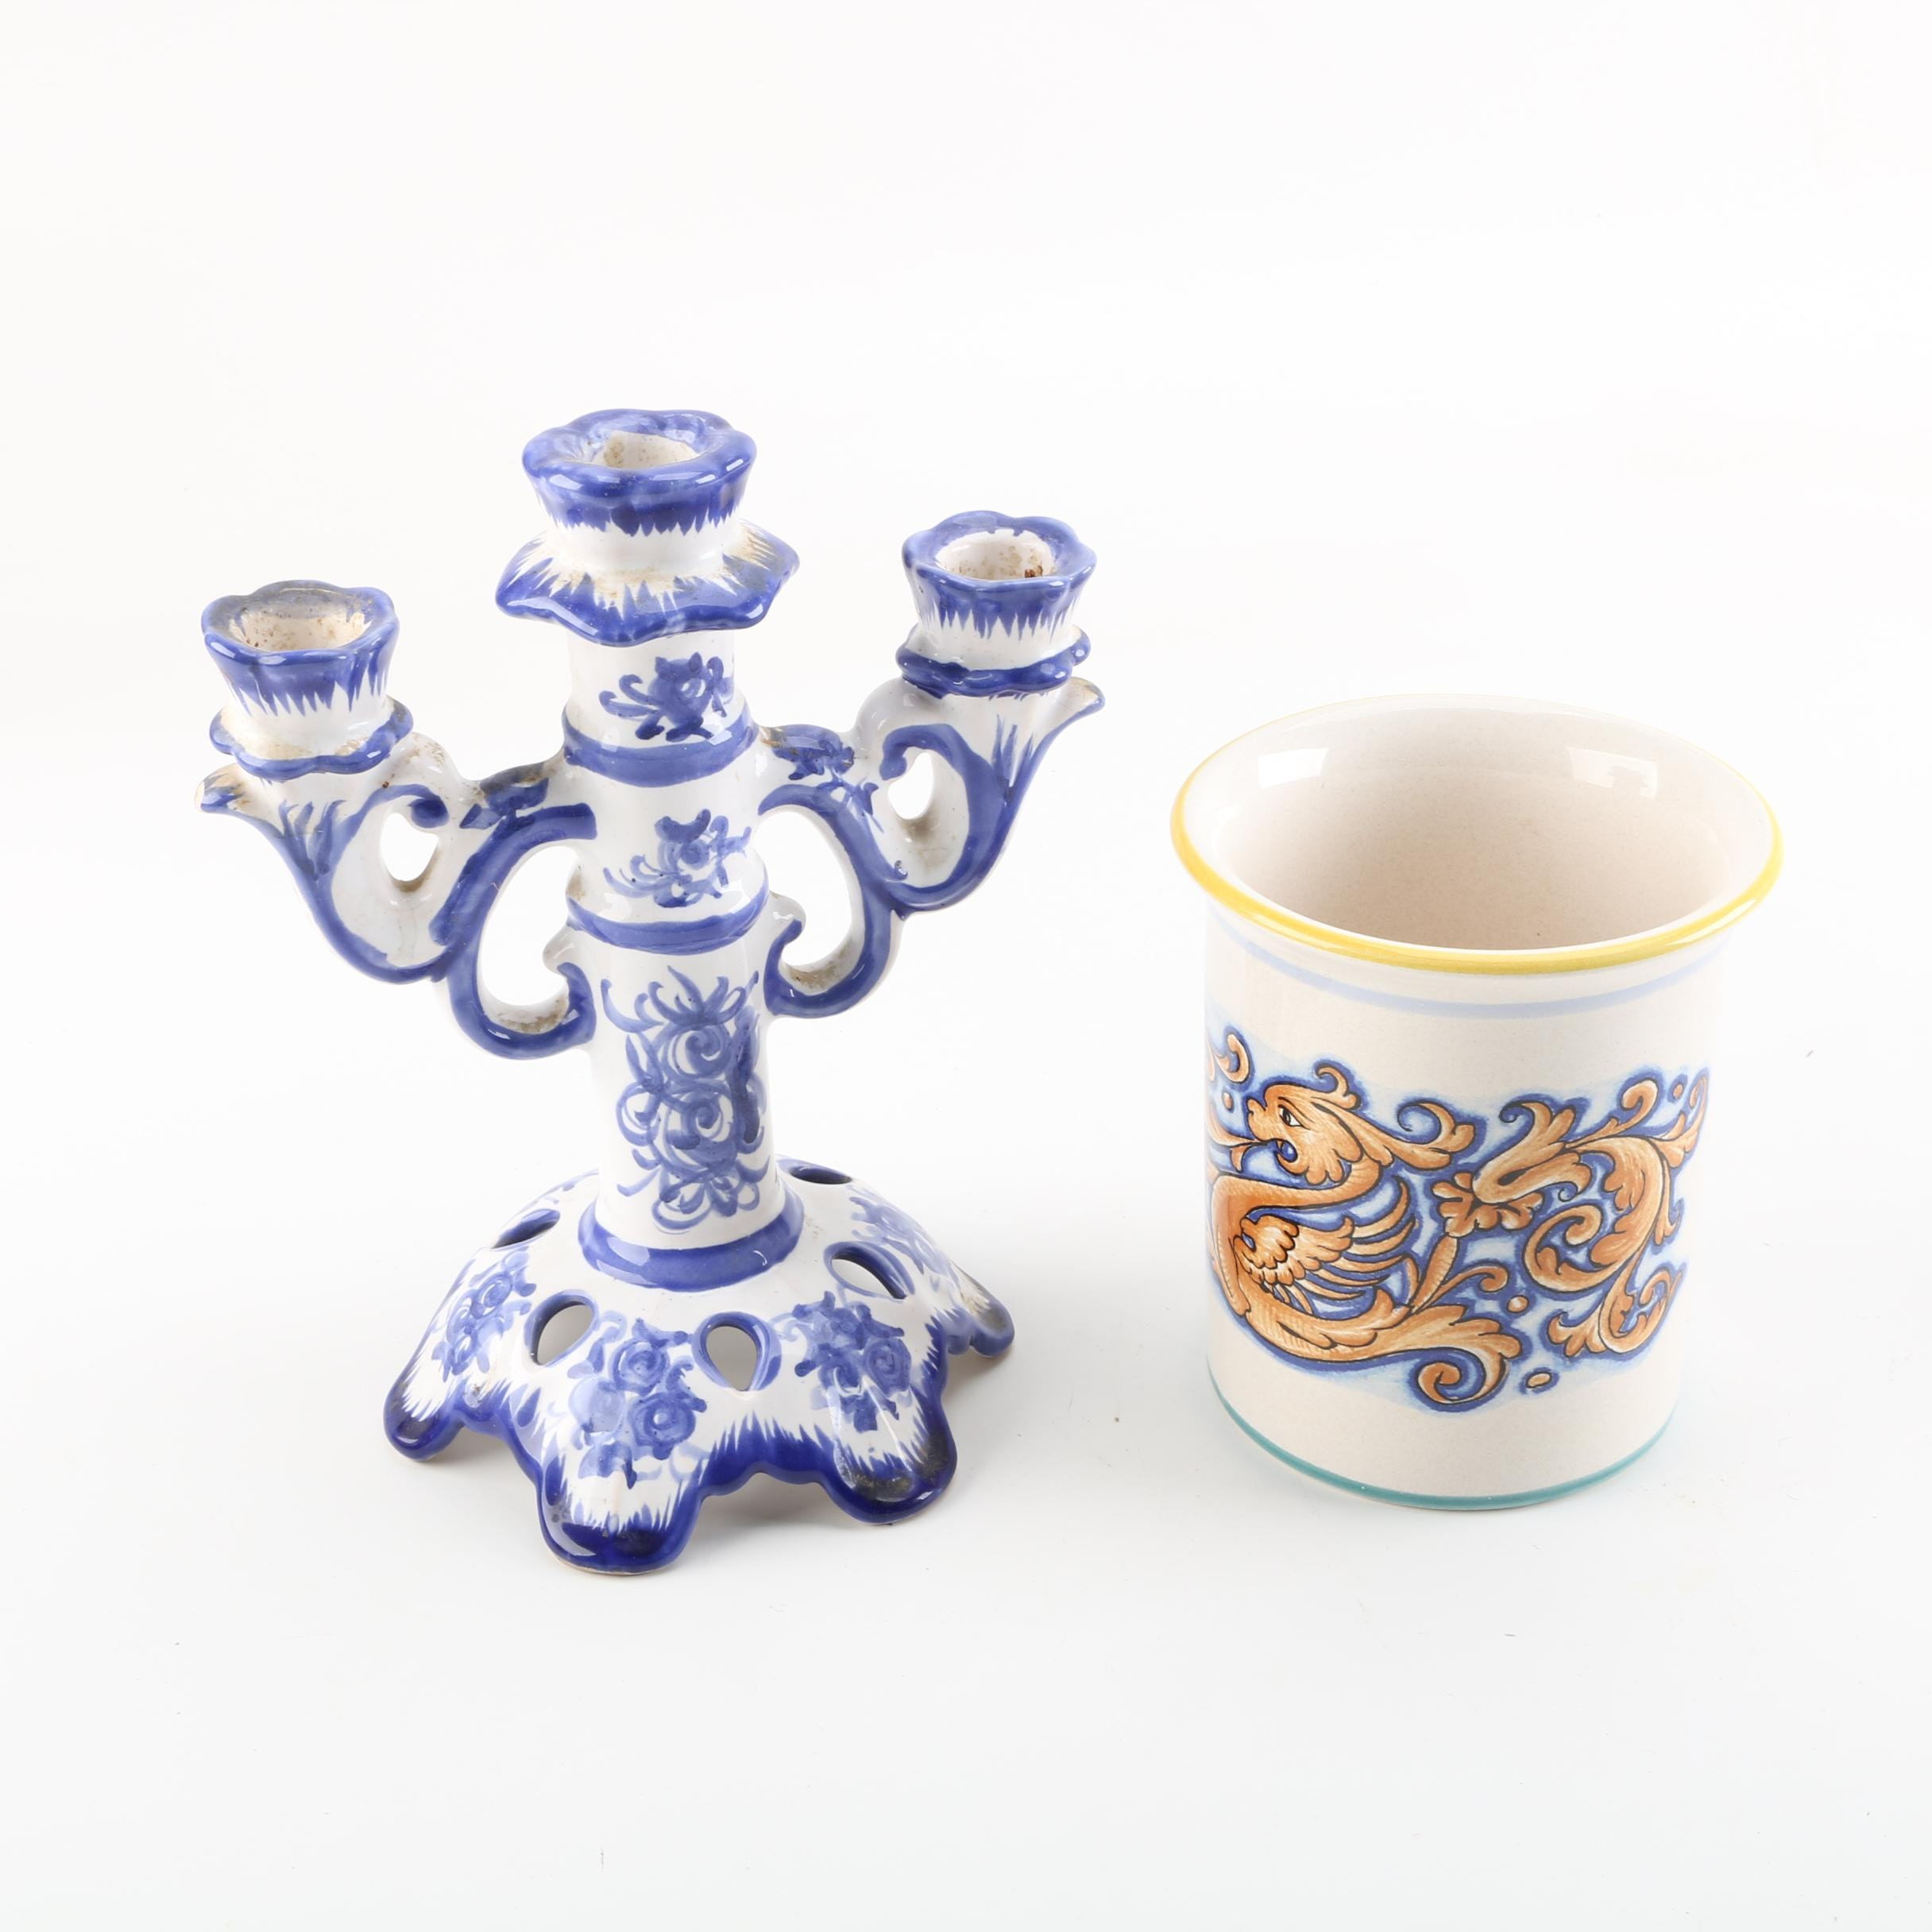 Hand-Painted Deruta Ceramiche Canister and Portugese Candelabra